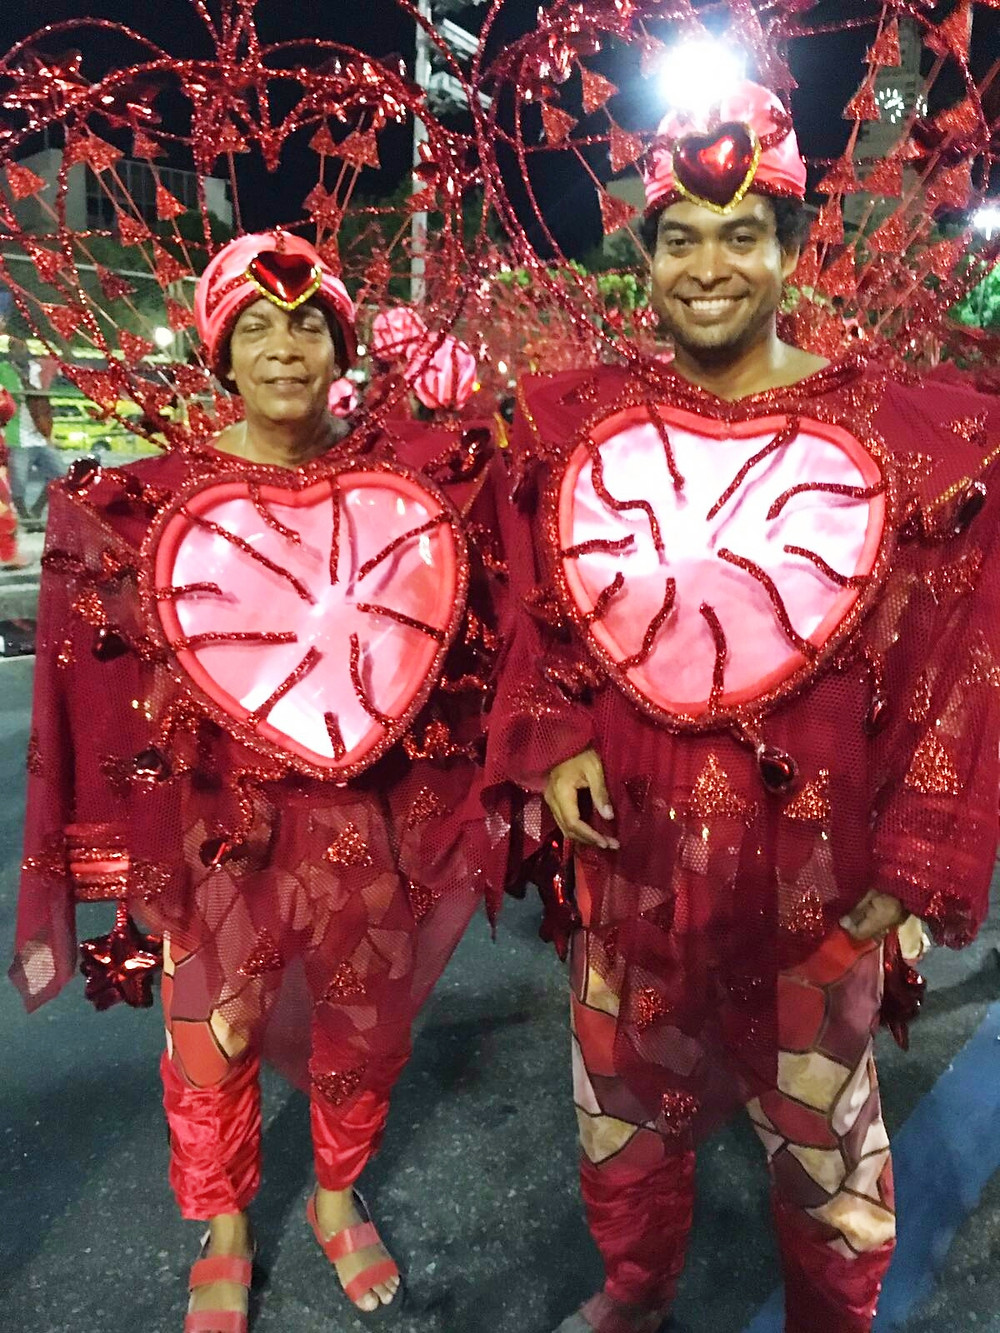 My dad and me, right before starting the Carnaval Parade 2017